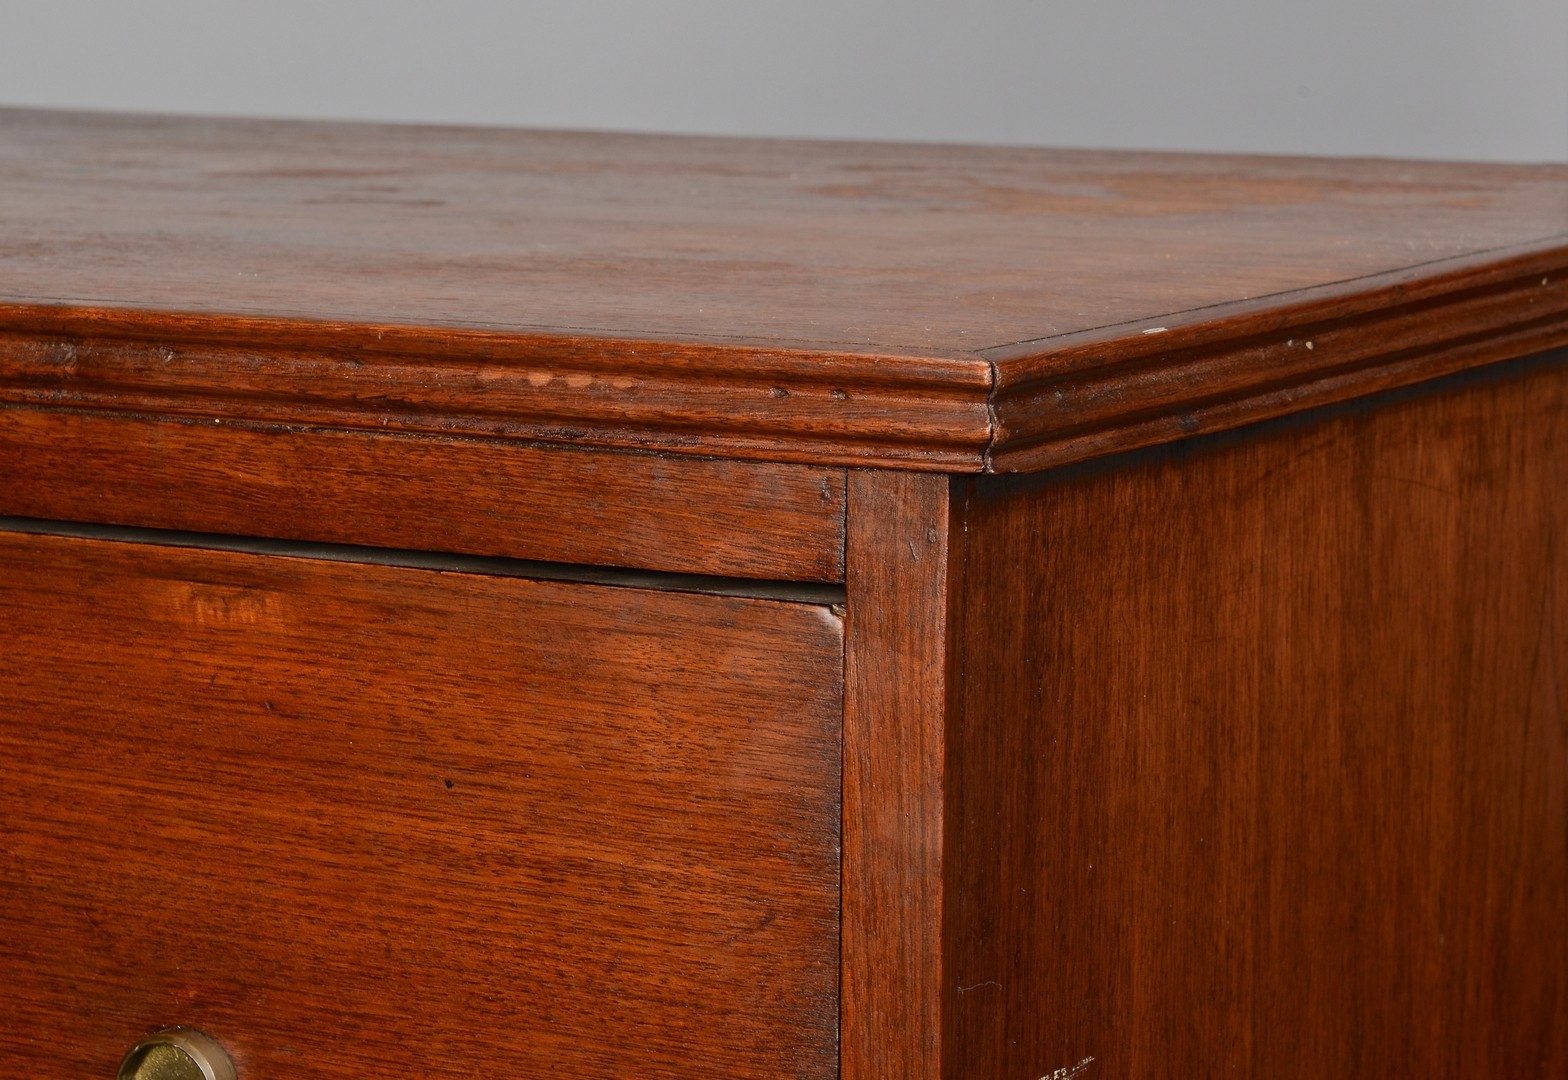 Lot 284: East TN Chest of Drawers, signed A. Hansard